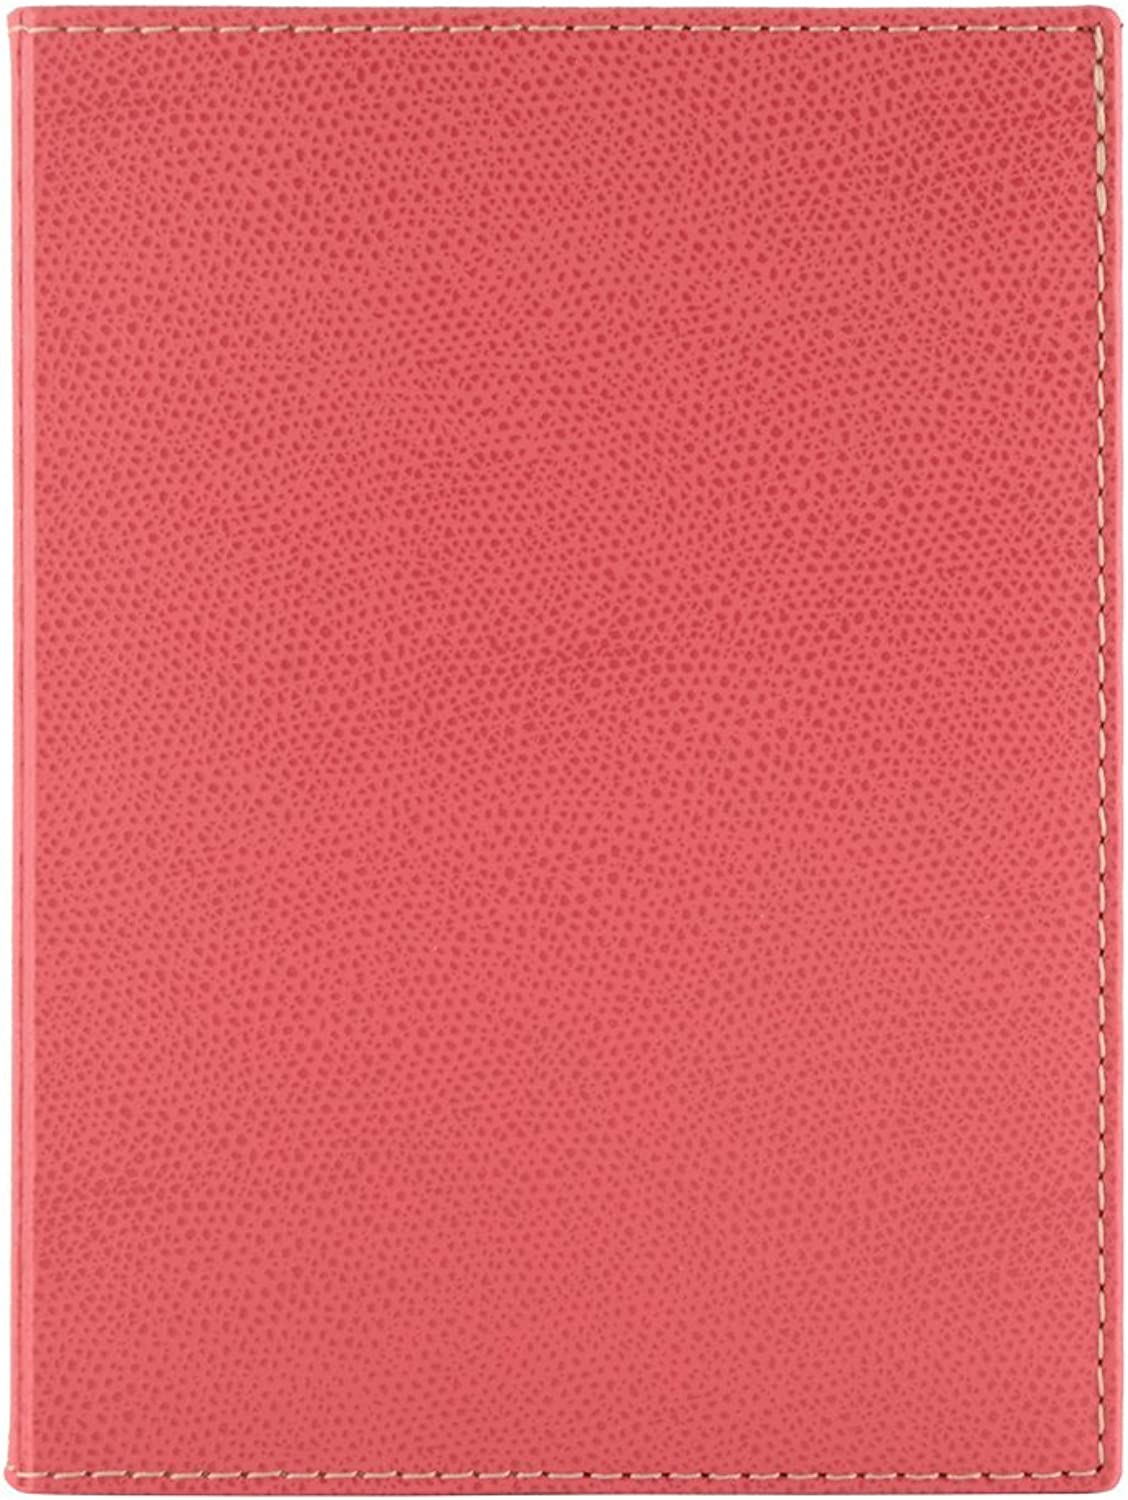 Quo Vadis Textagenda  29 Academic Planner, Club Cover, Rosa Grained Leatherette, 12 Months, August 2018 to July 2019, Daily, 4.75 by 6.75 inches B07CRMMSKL  | Up-to-date-styling